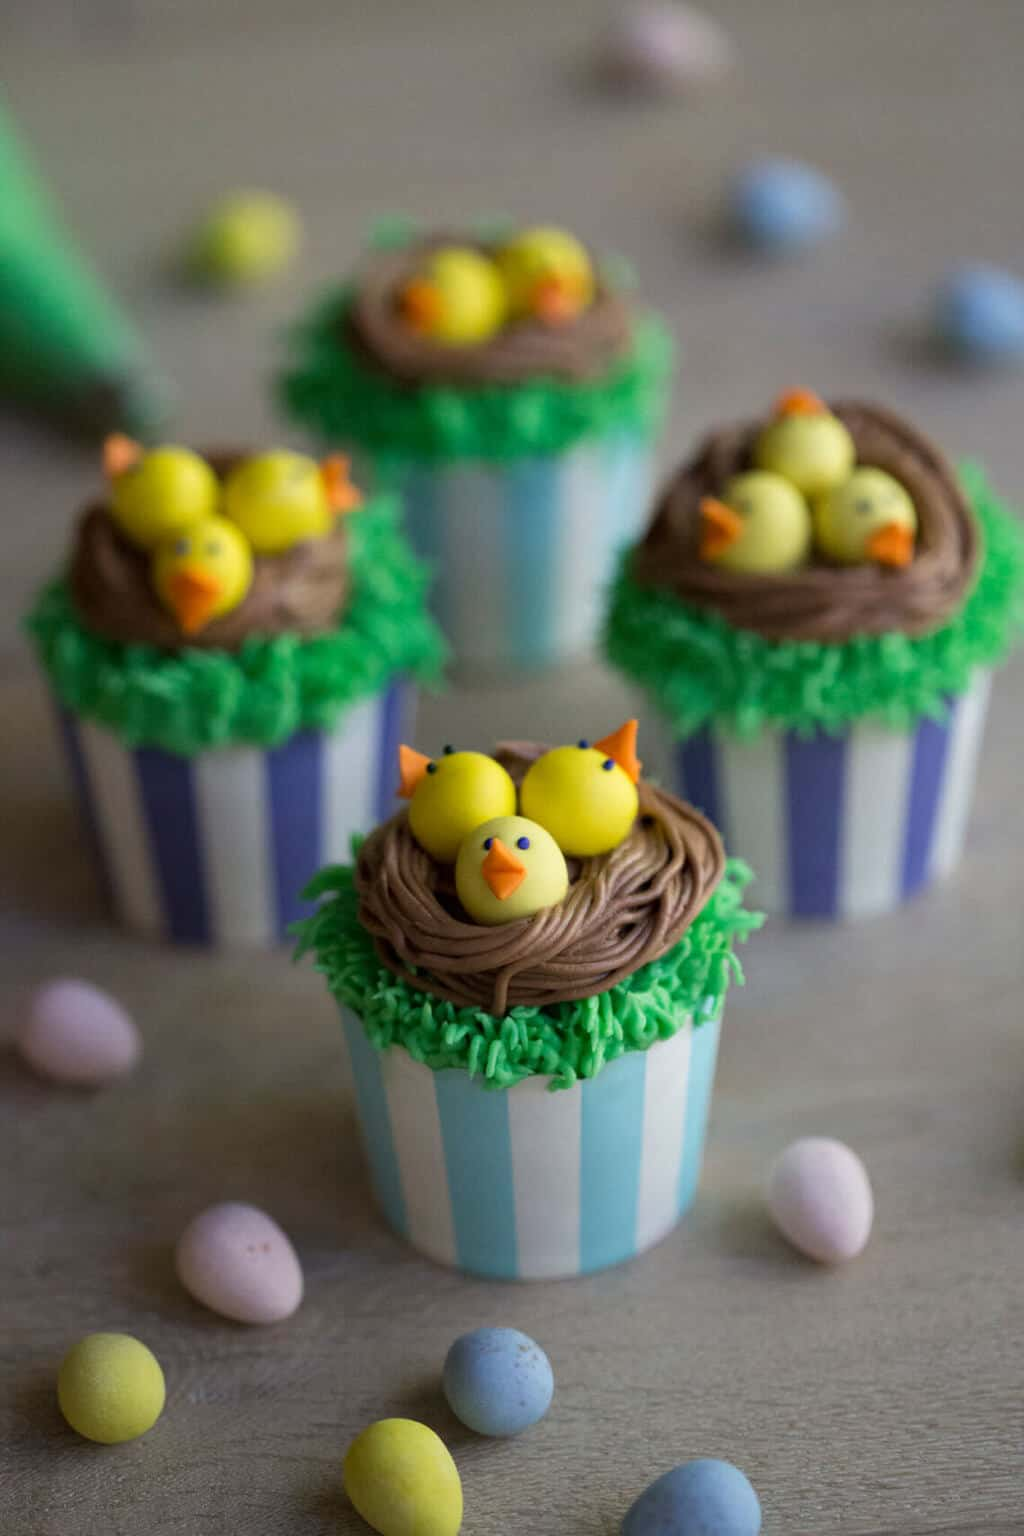 A photo of completed Easter chick cupcakes.